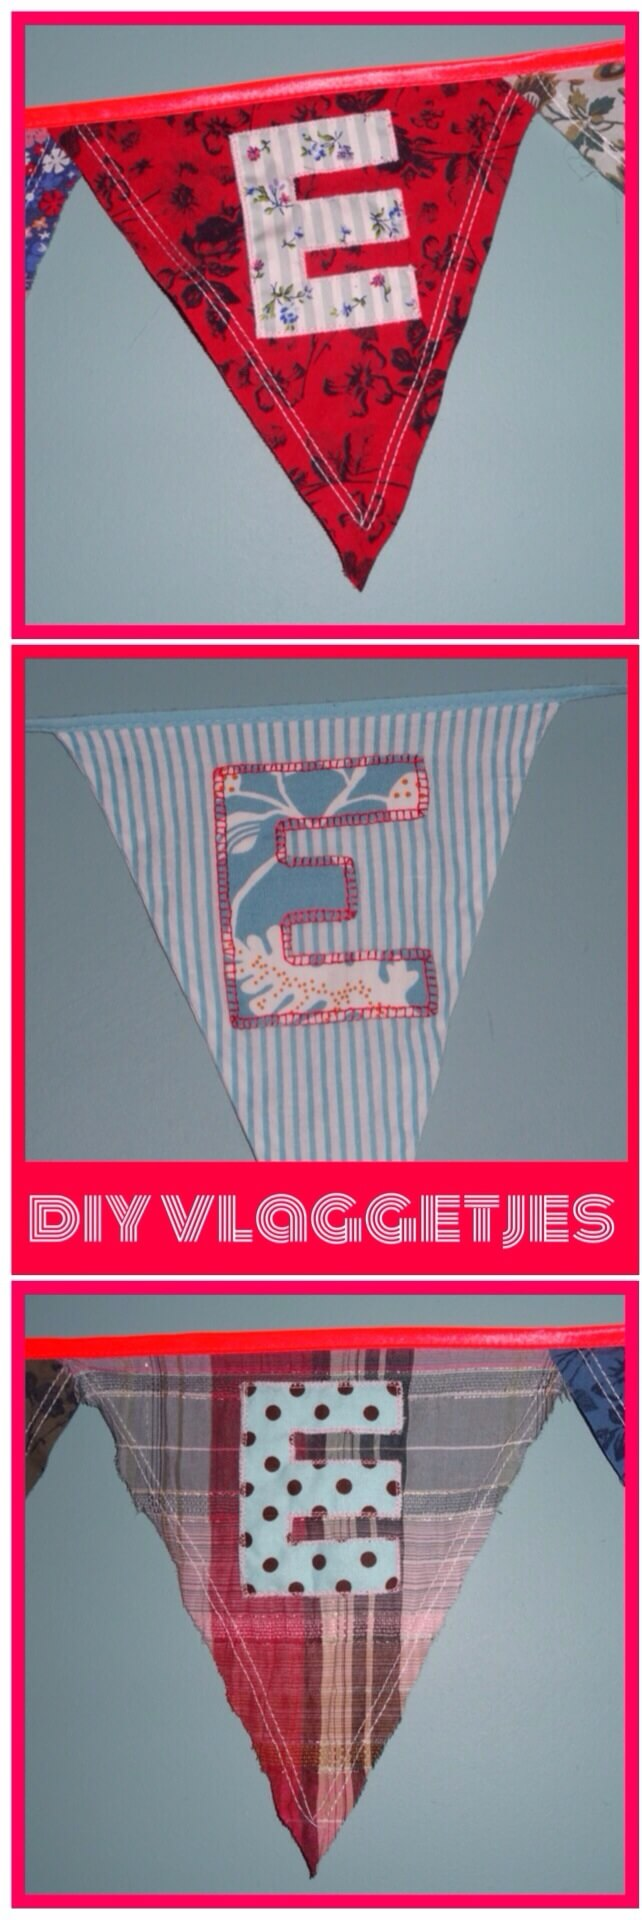 diy name flags children nursery vlaggetjes kinderkamer zelfmaken